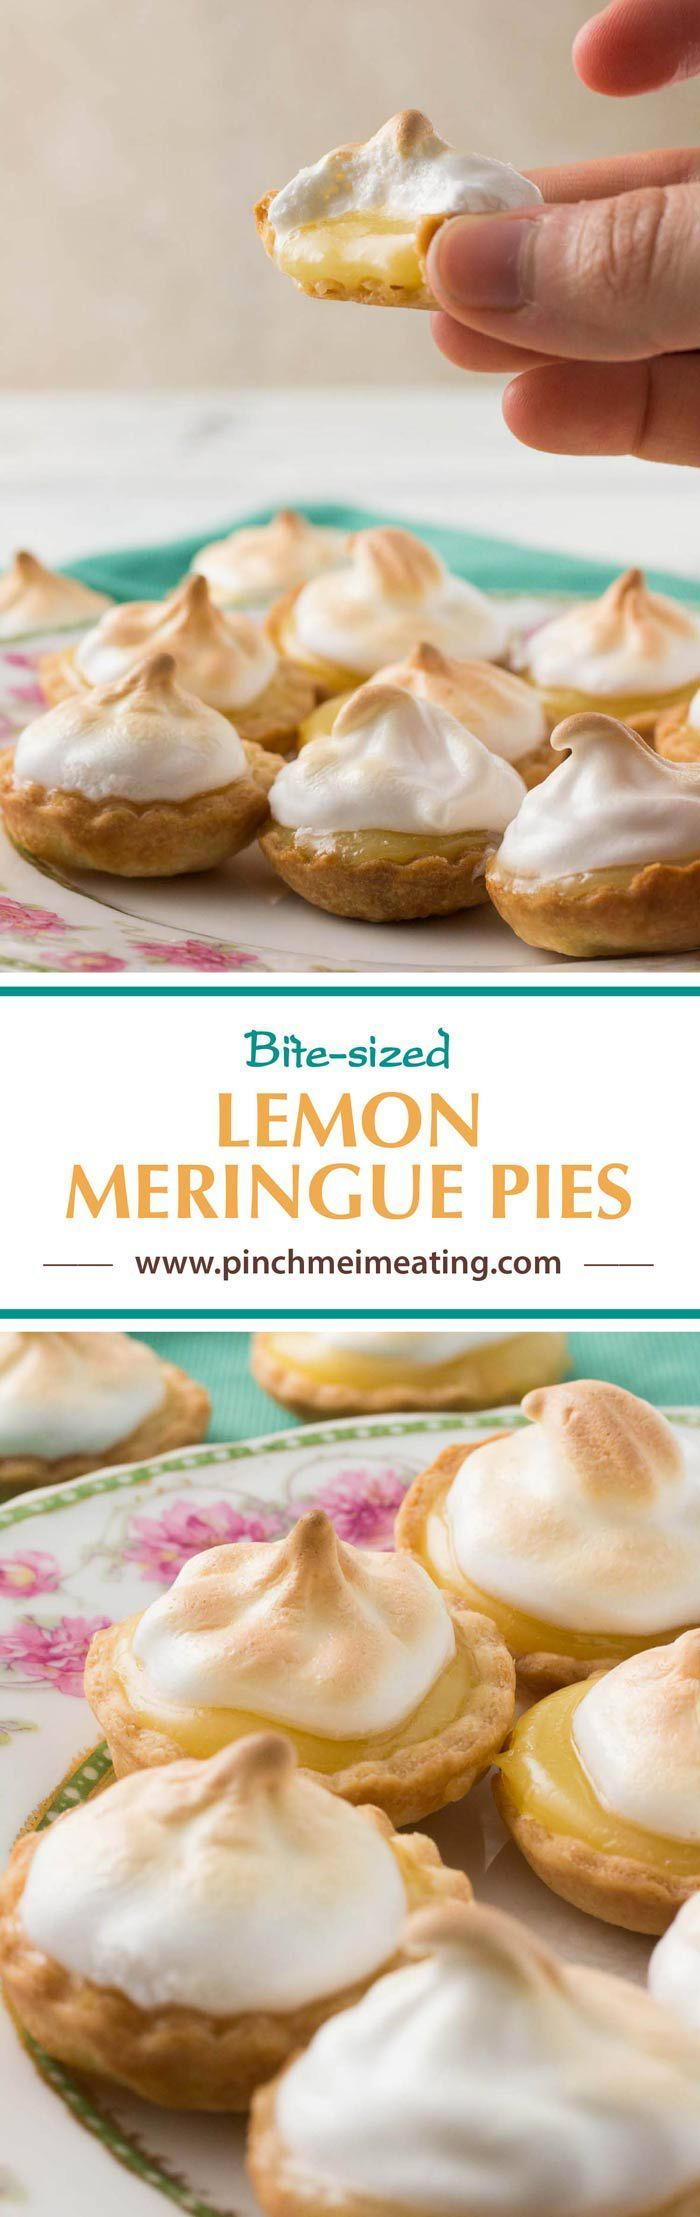 These bite-sized mini lemon meringue pies are a charming and adorable dessert for a springtime or Mother's Day tea party! You can use homemade or store-bought lemon curd. | How to use lemon curd | Mother's Day desserts | Afternoon tea desserts | Afternoon